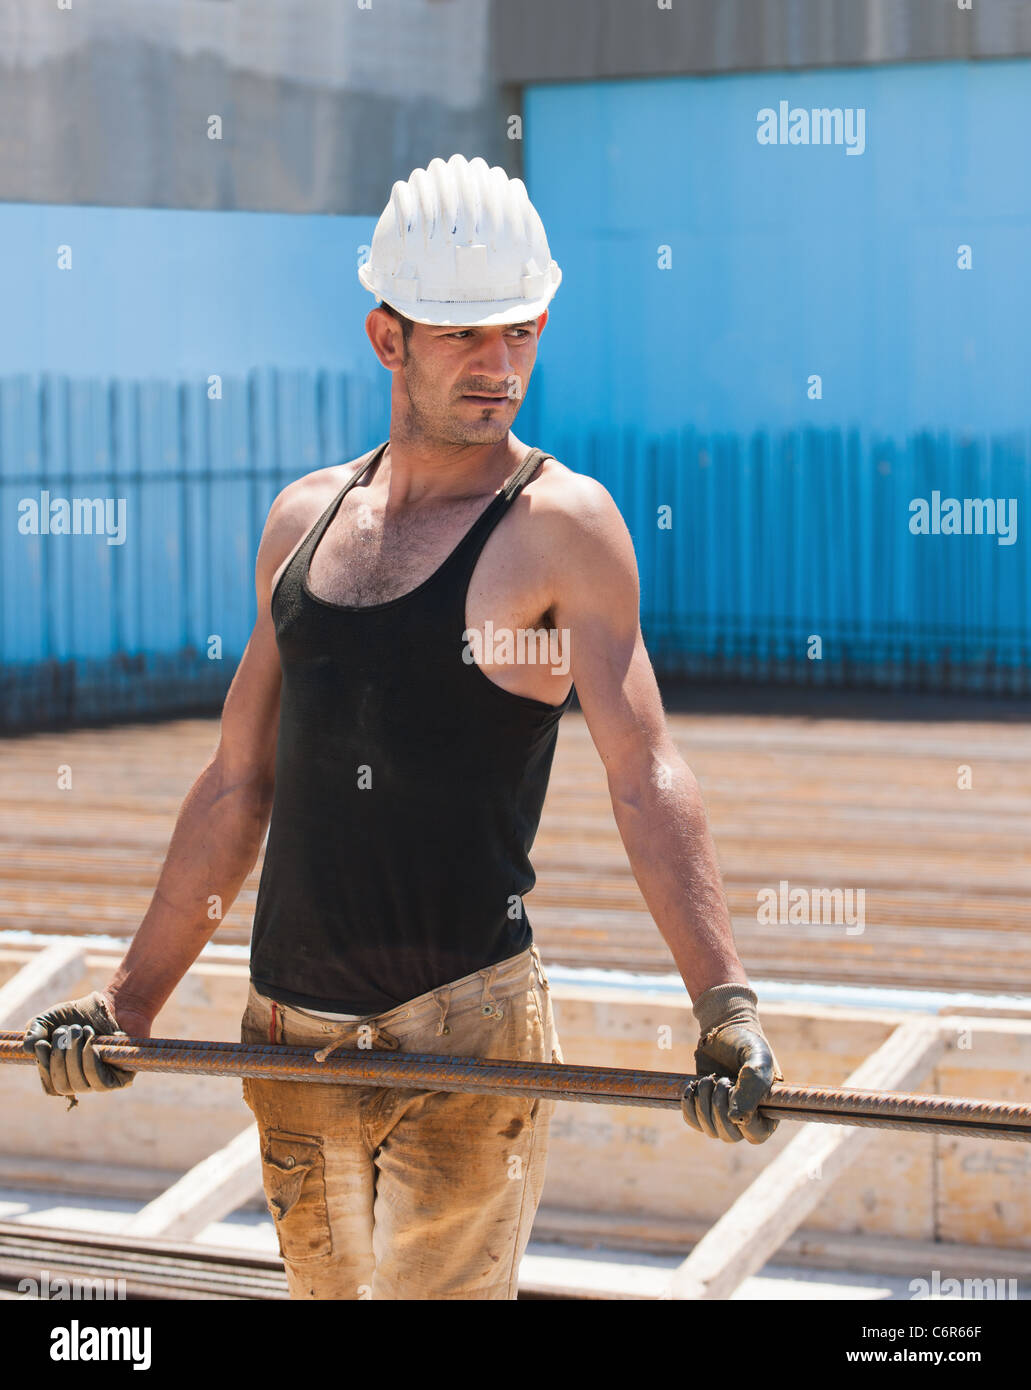 Construction worker carrying reinforcement steel bars - Stock Image